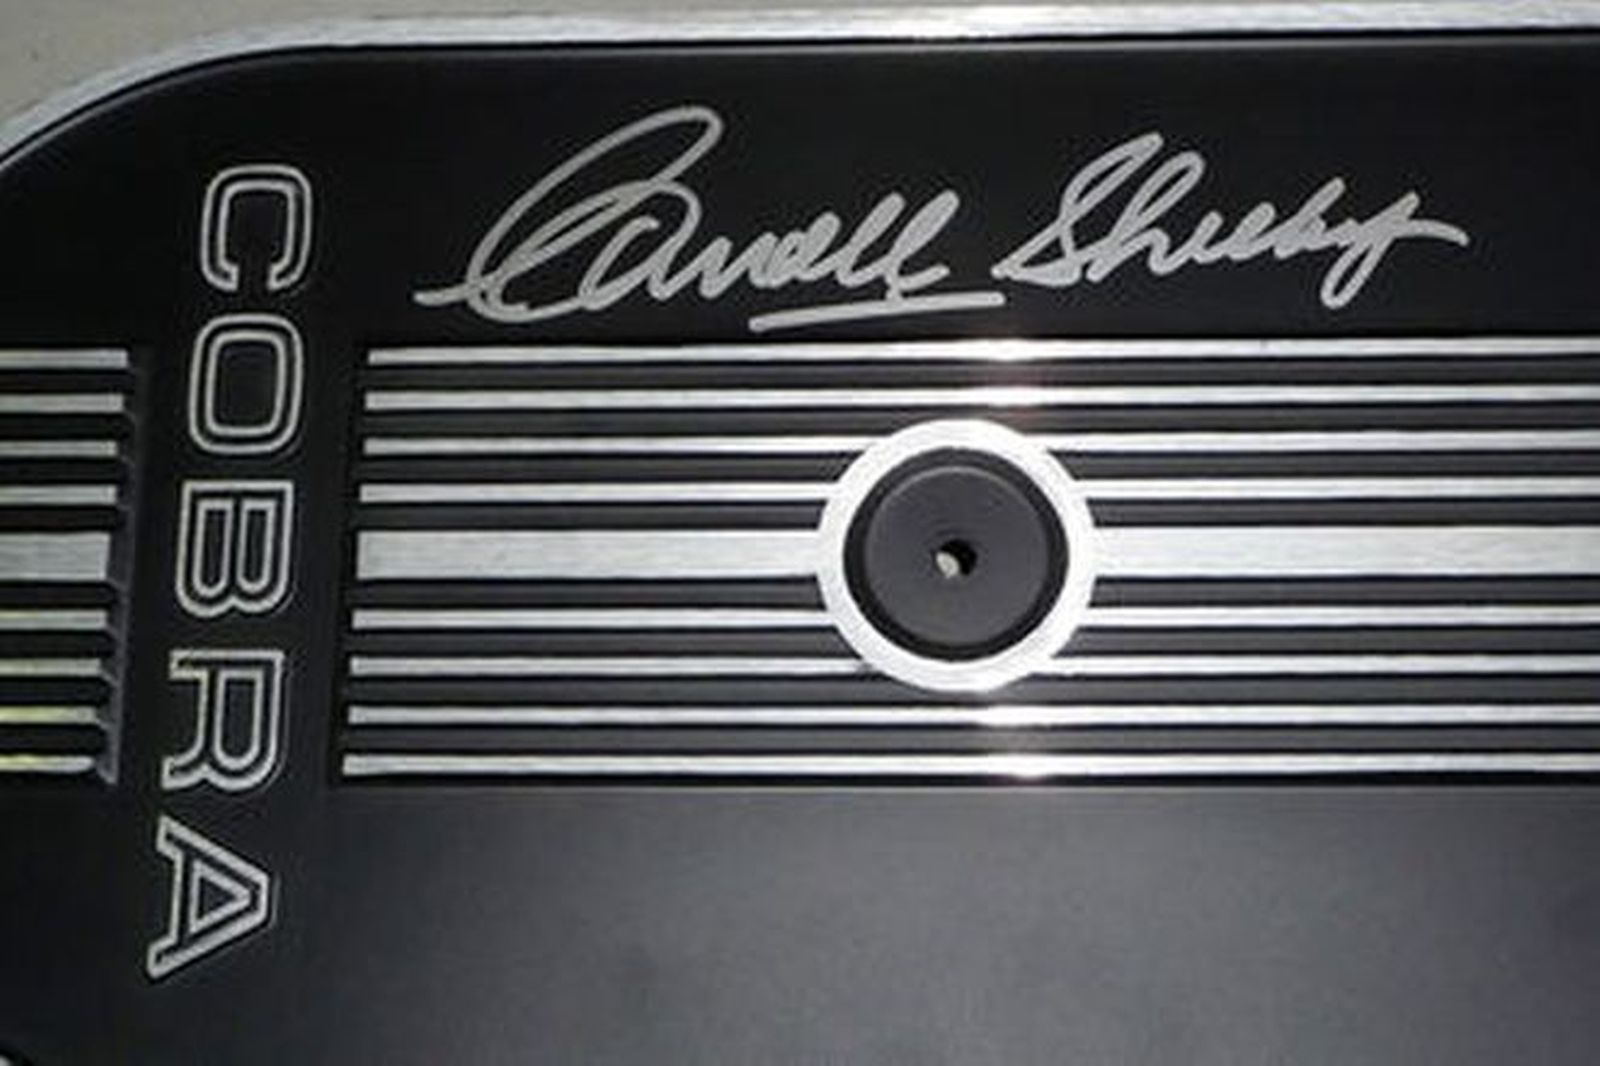 Air Filter - Air Filter assembly signed by Carroll Shelby